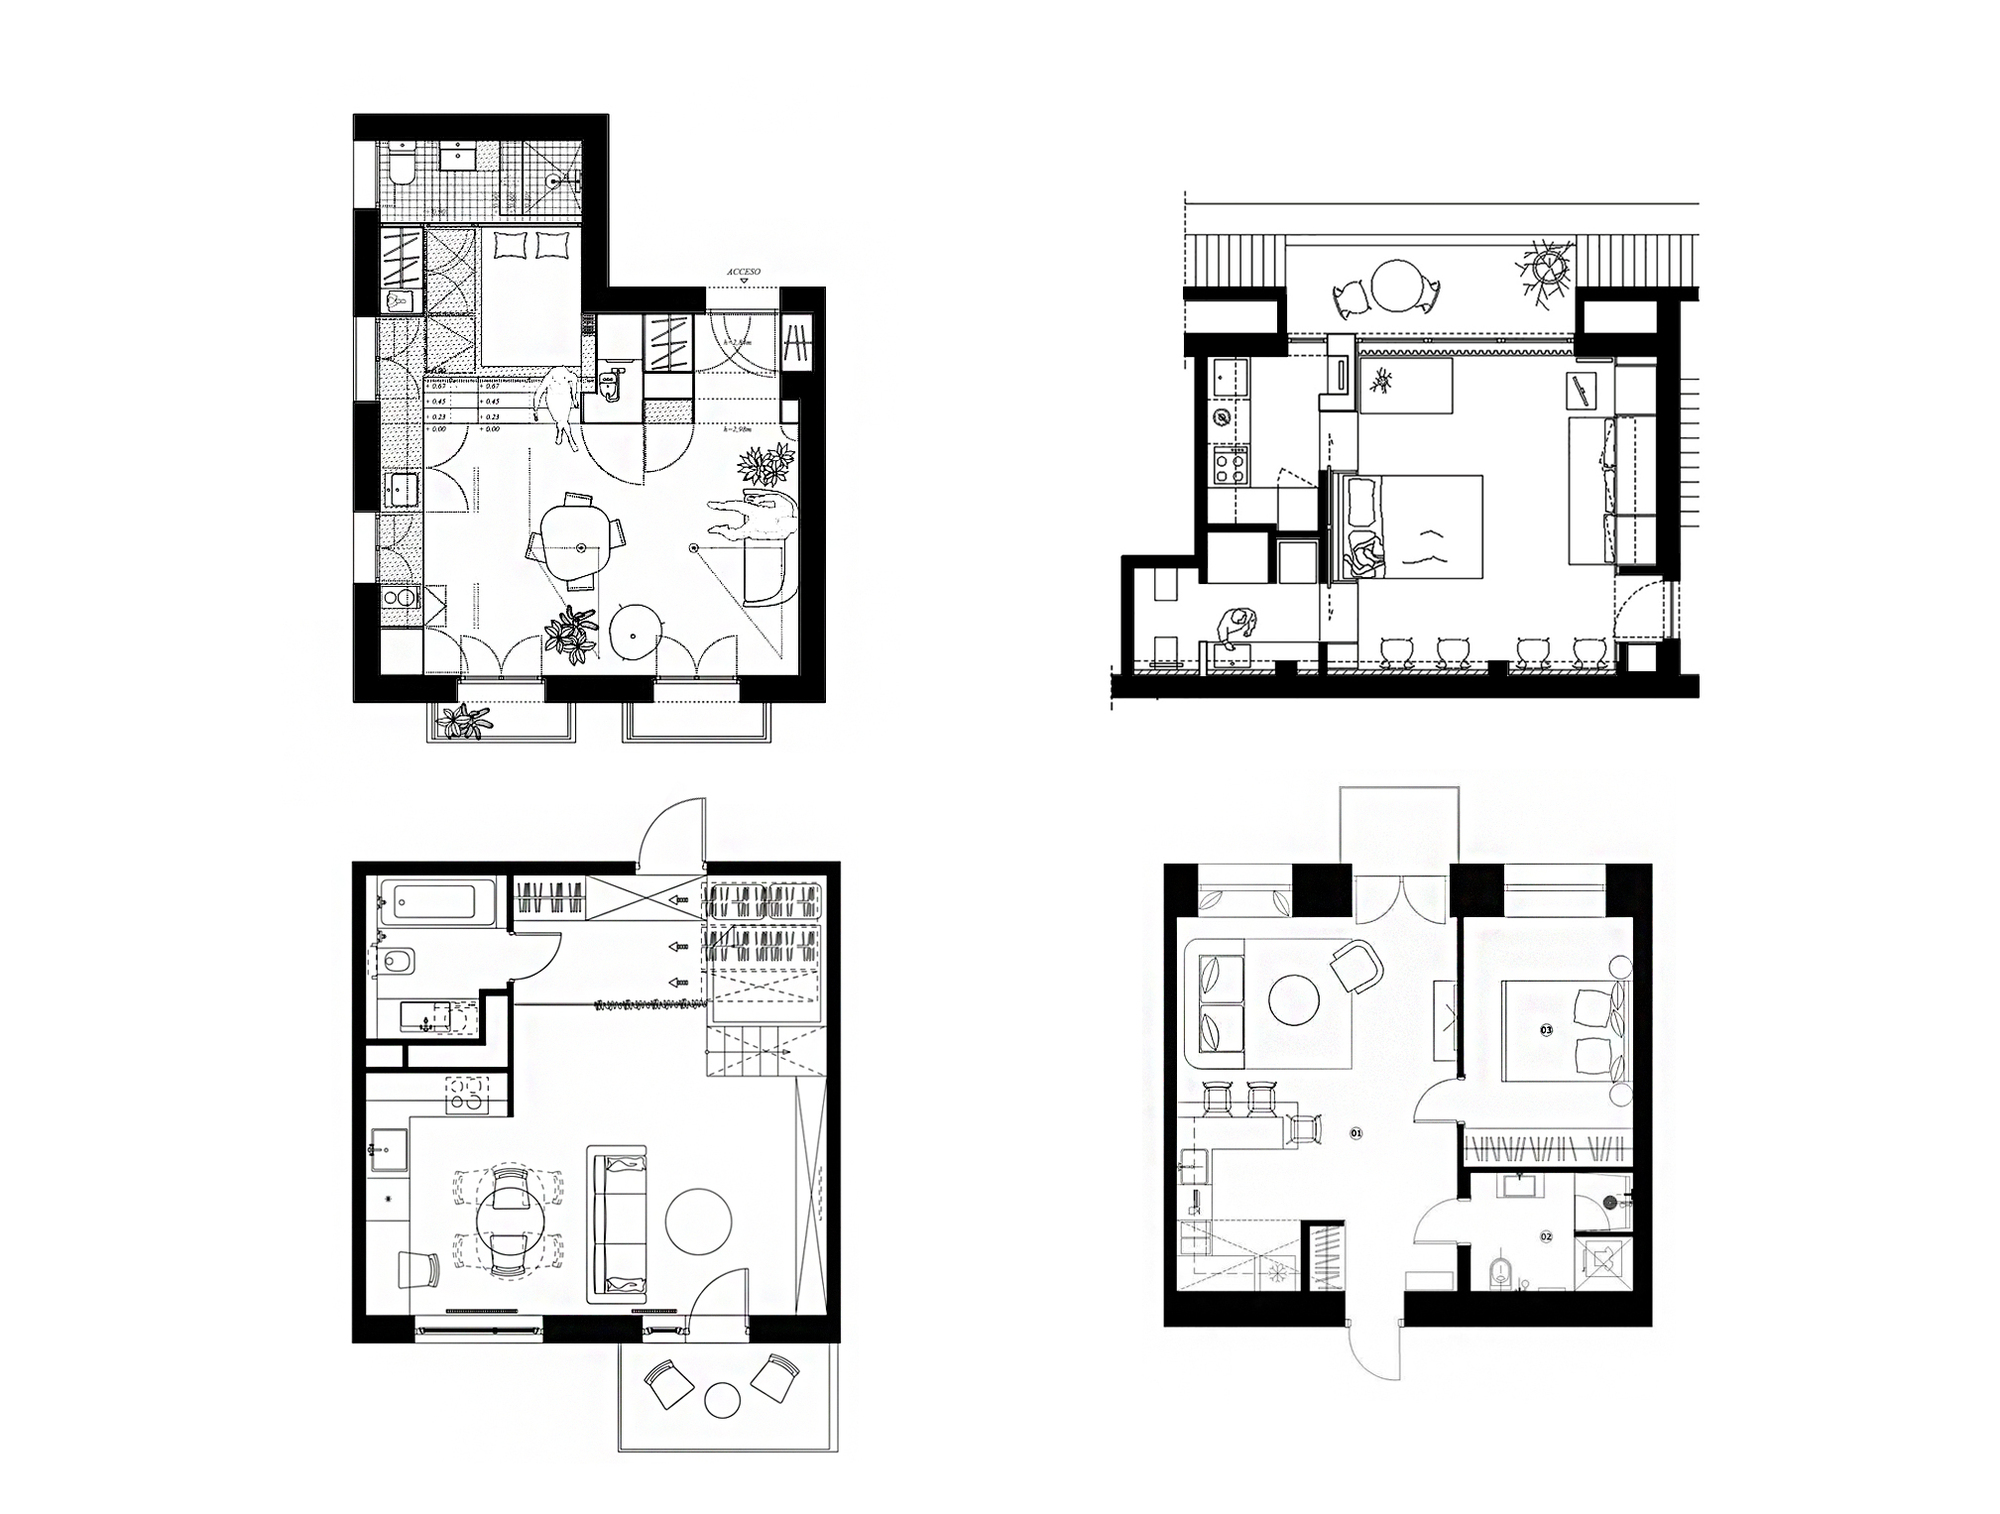 House Plan Drawing House Plans Under 50 Square Meters 26 More Helpful Examples Of